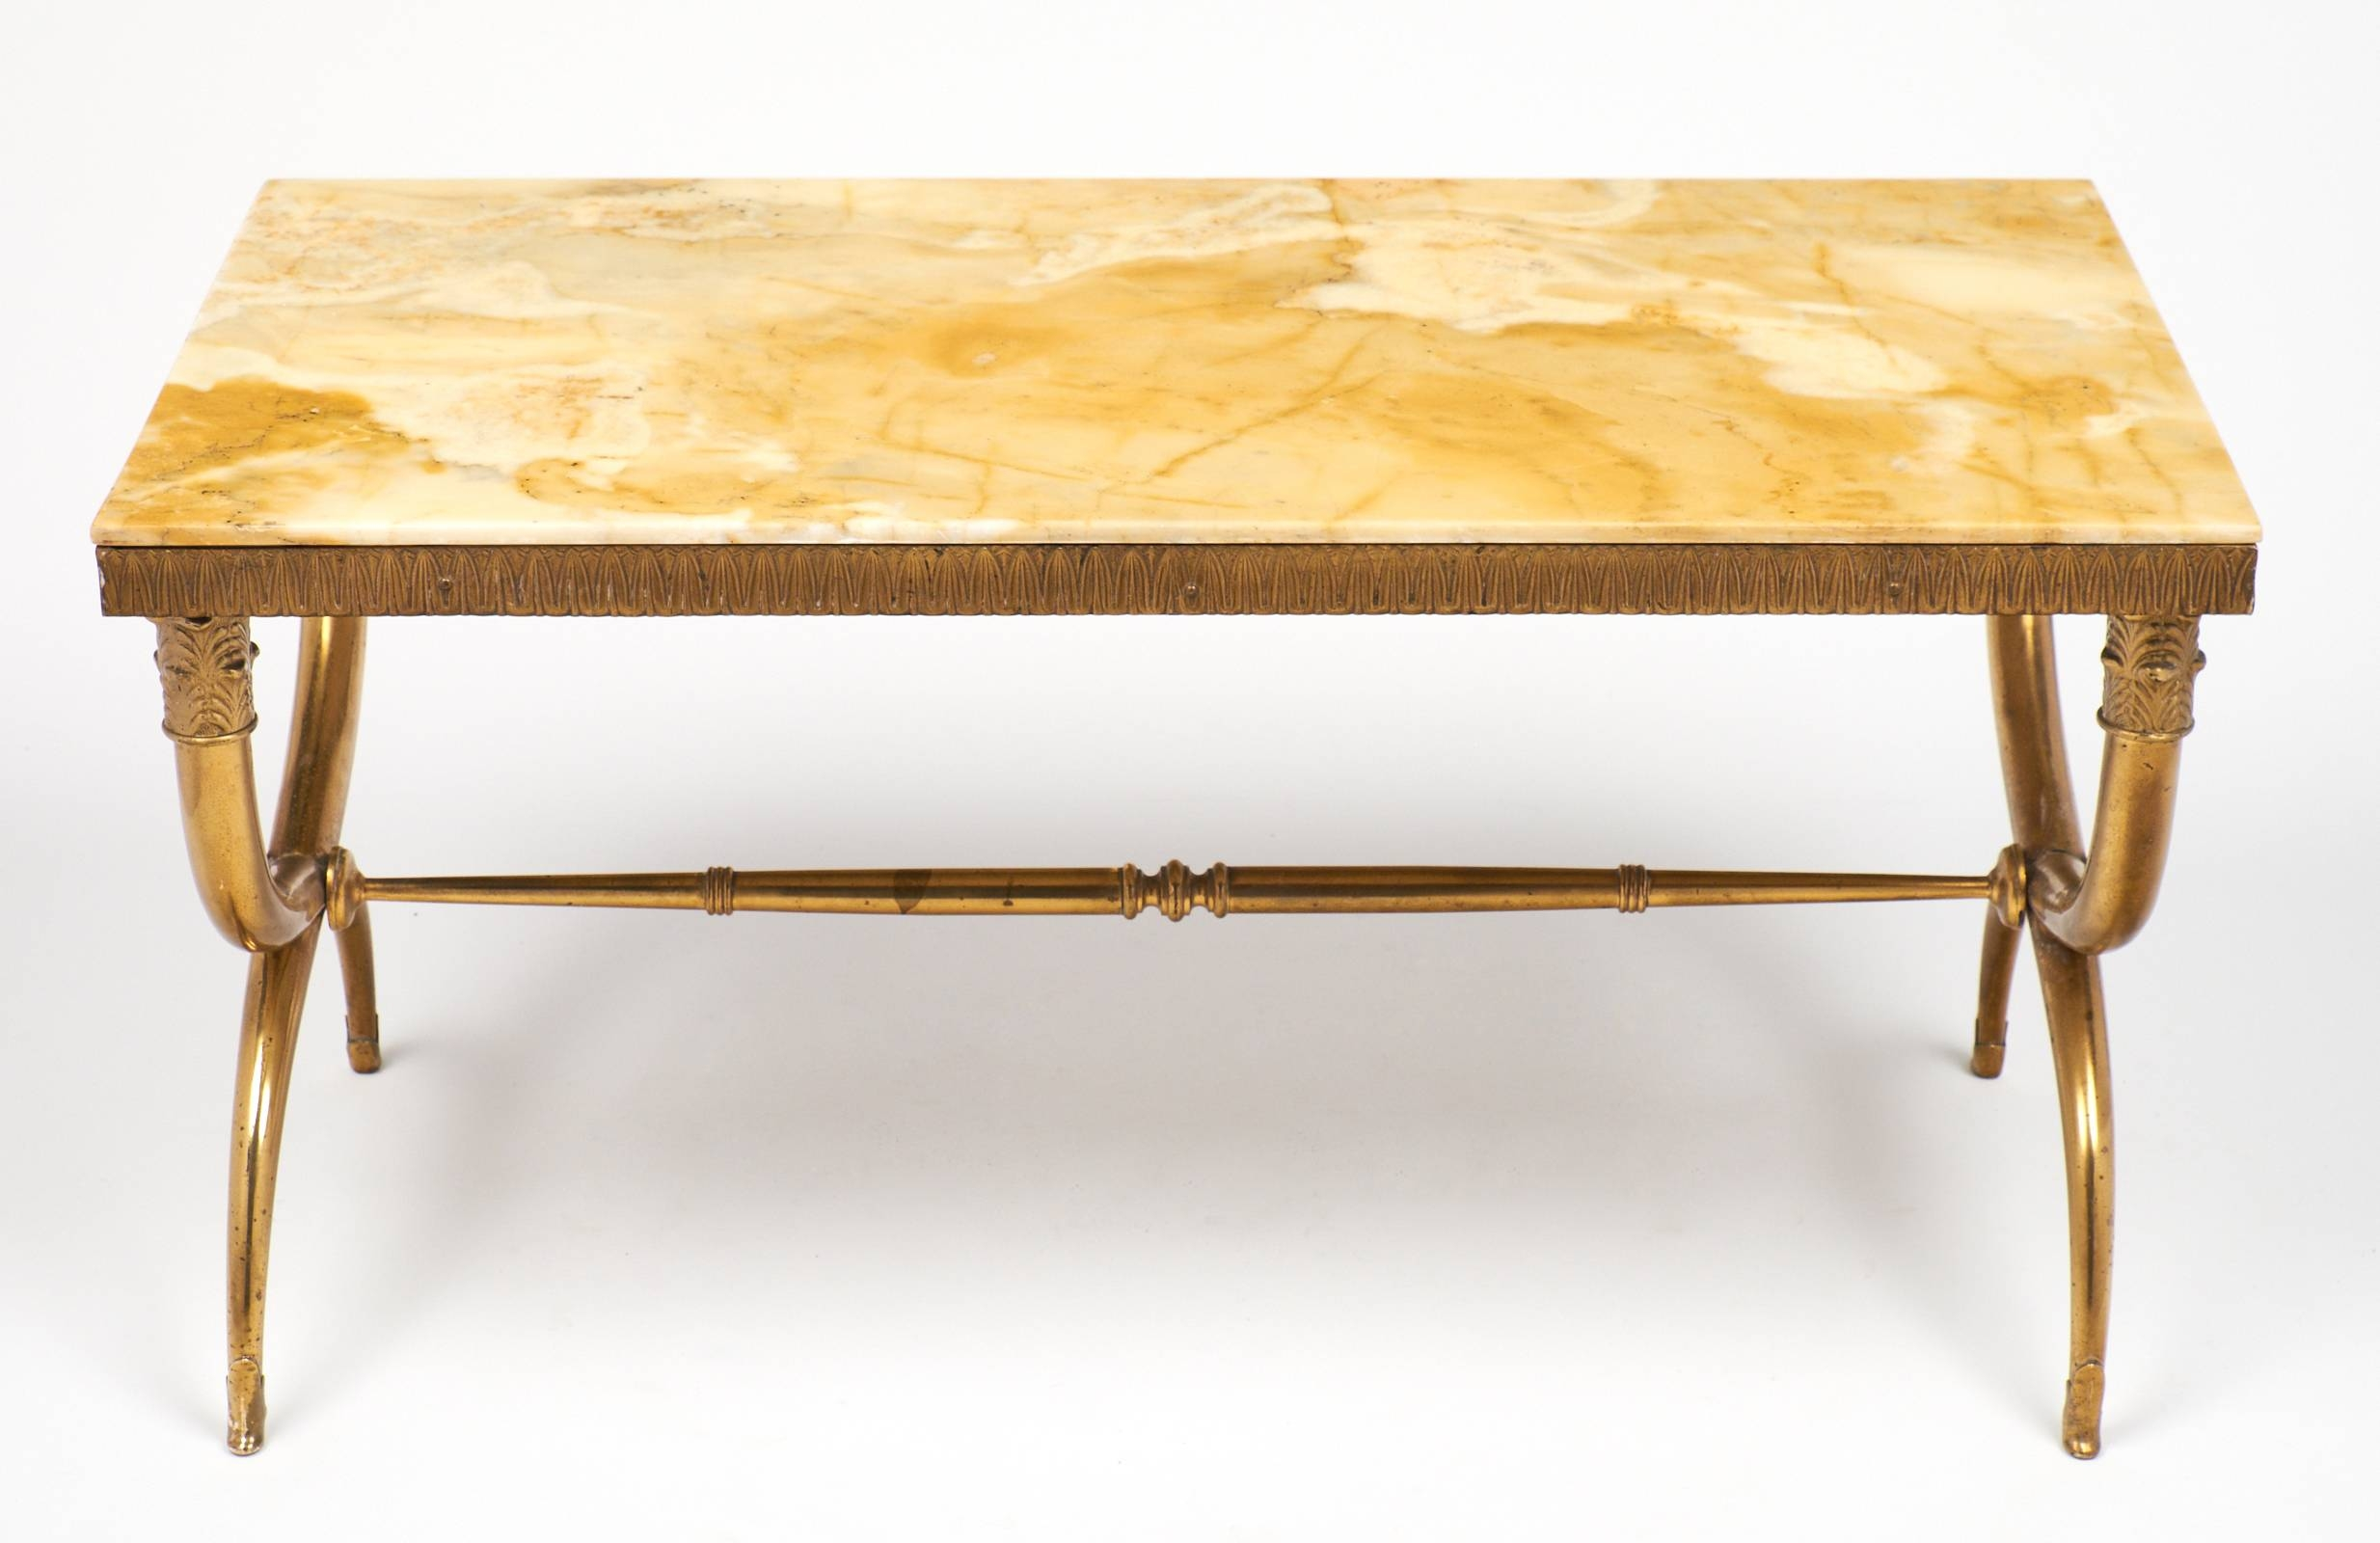 Ramsay Style Gilt Bronze Coffee Table - Jean Marc Fray throughout Bronze Coffee Tables (Image 23 of 30)